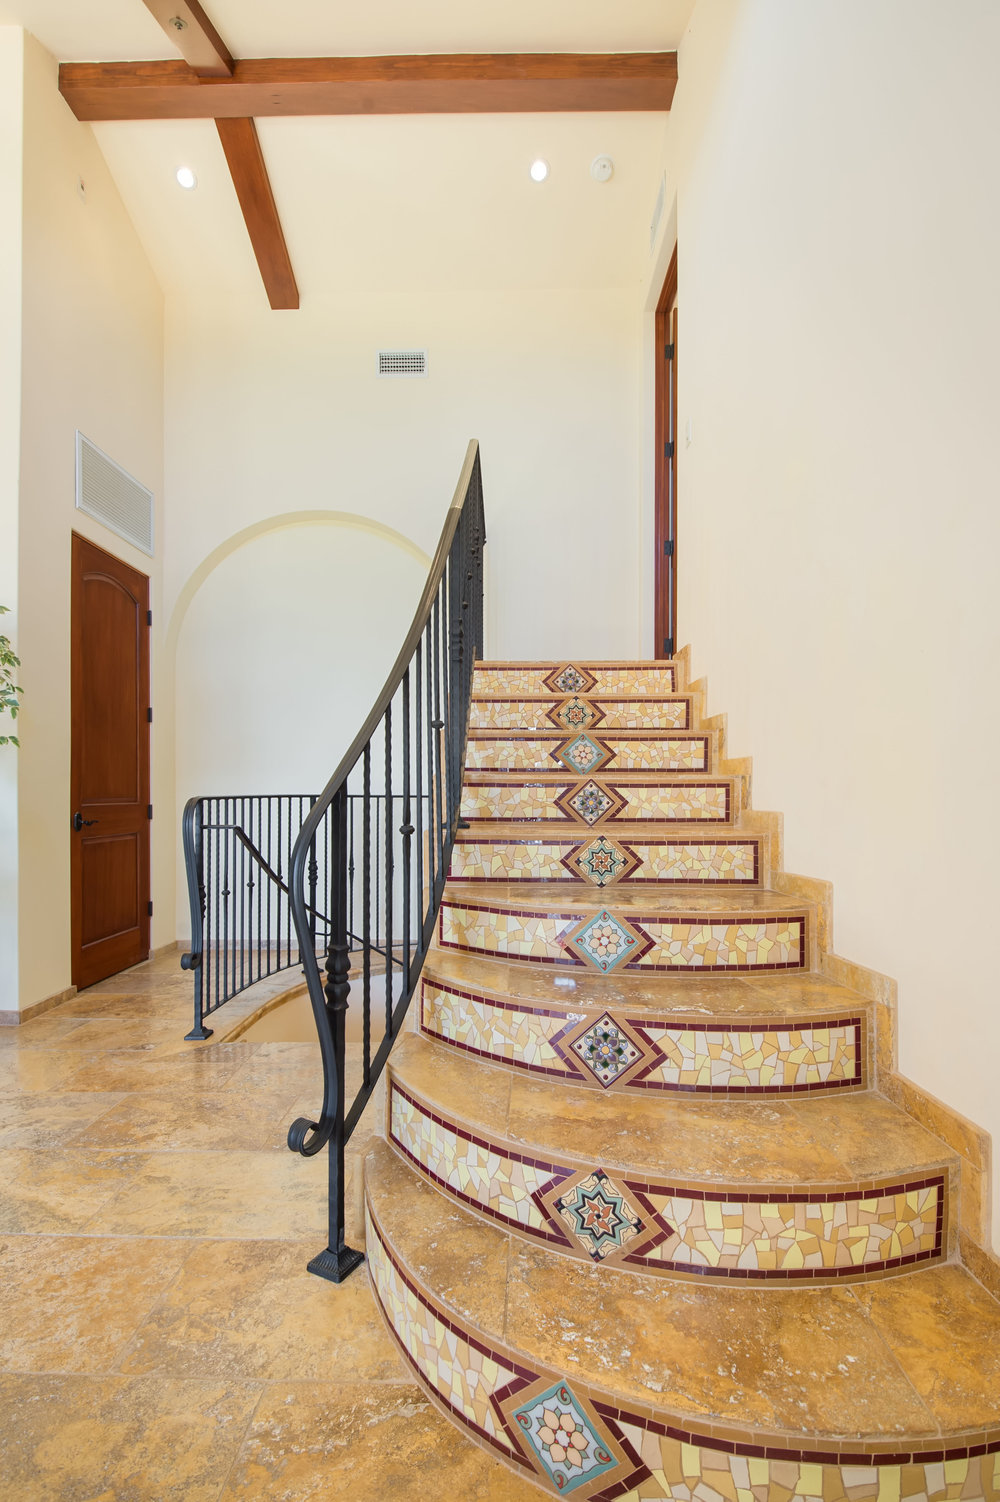 022.1 Stairs 26303 Lockwood Road Malibu For Sale Lease The Malibu Life Team Luxury Real Estate.jpg